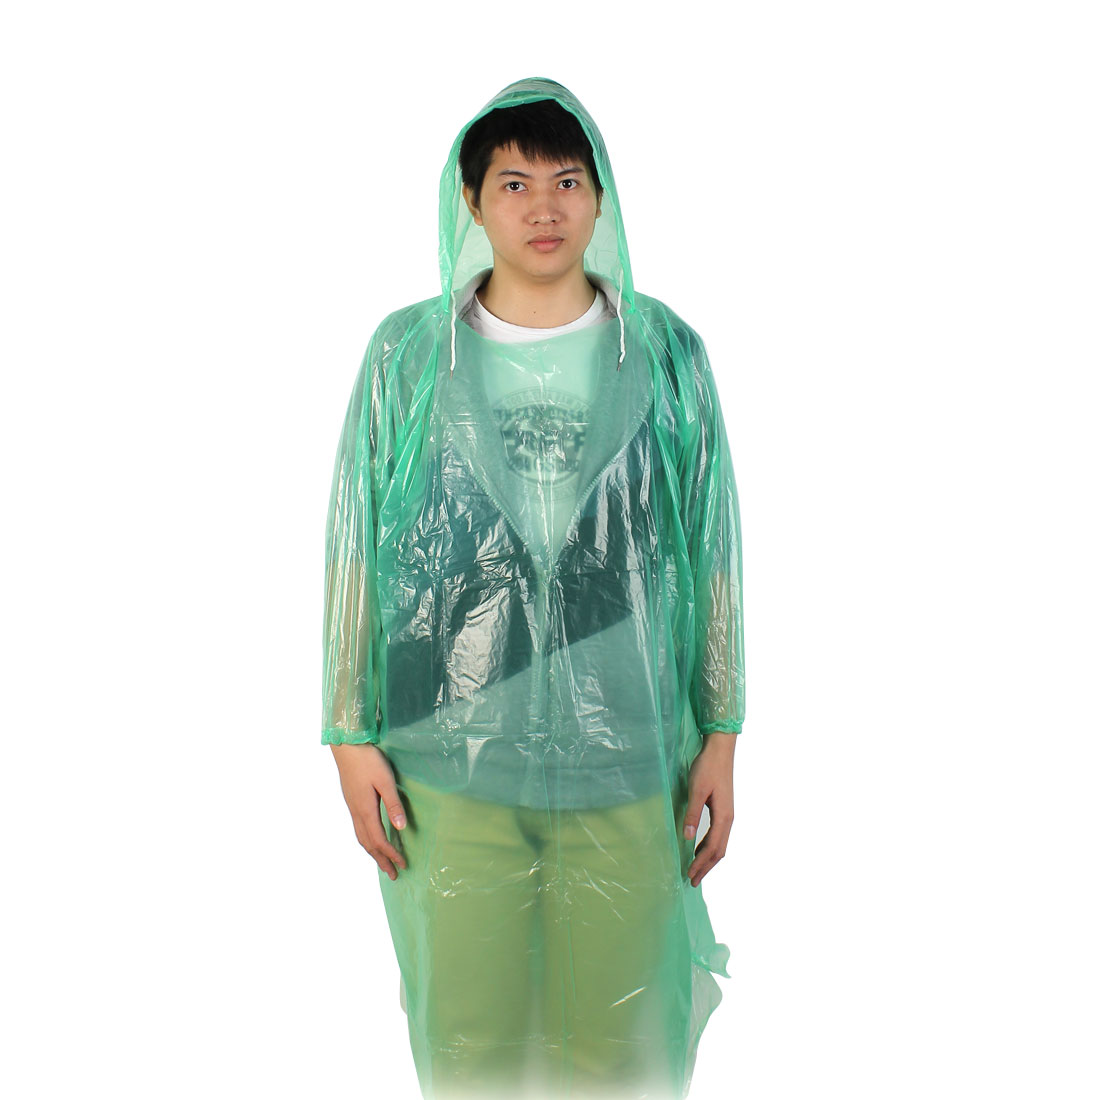 Unisex Outdoor Camping Hiking Cover Plastic Disposable Pullover Raincoat Green